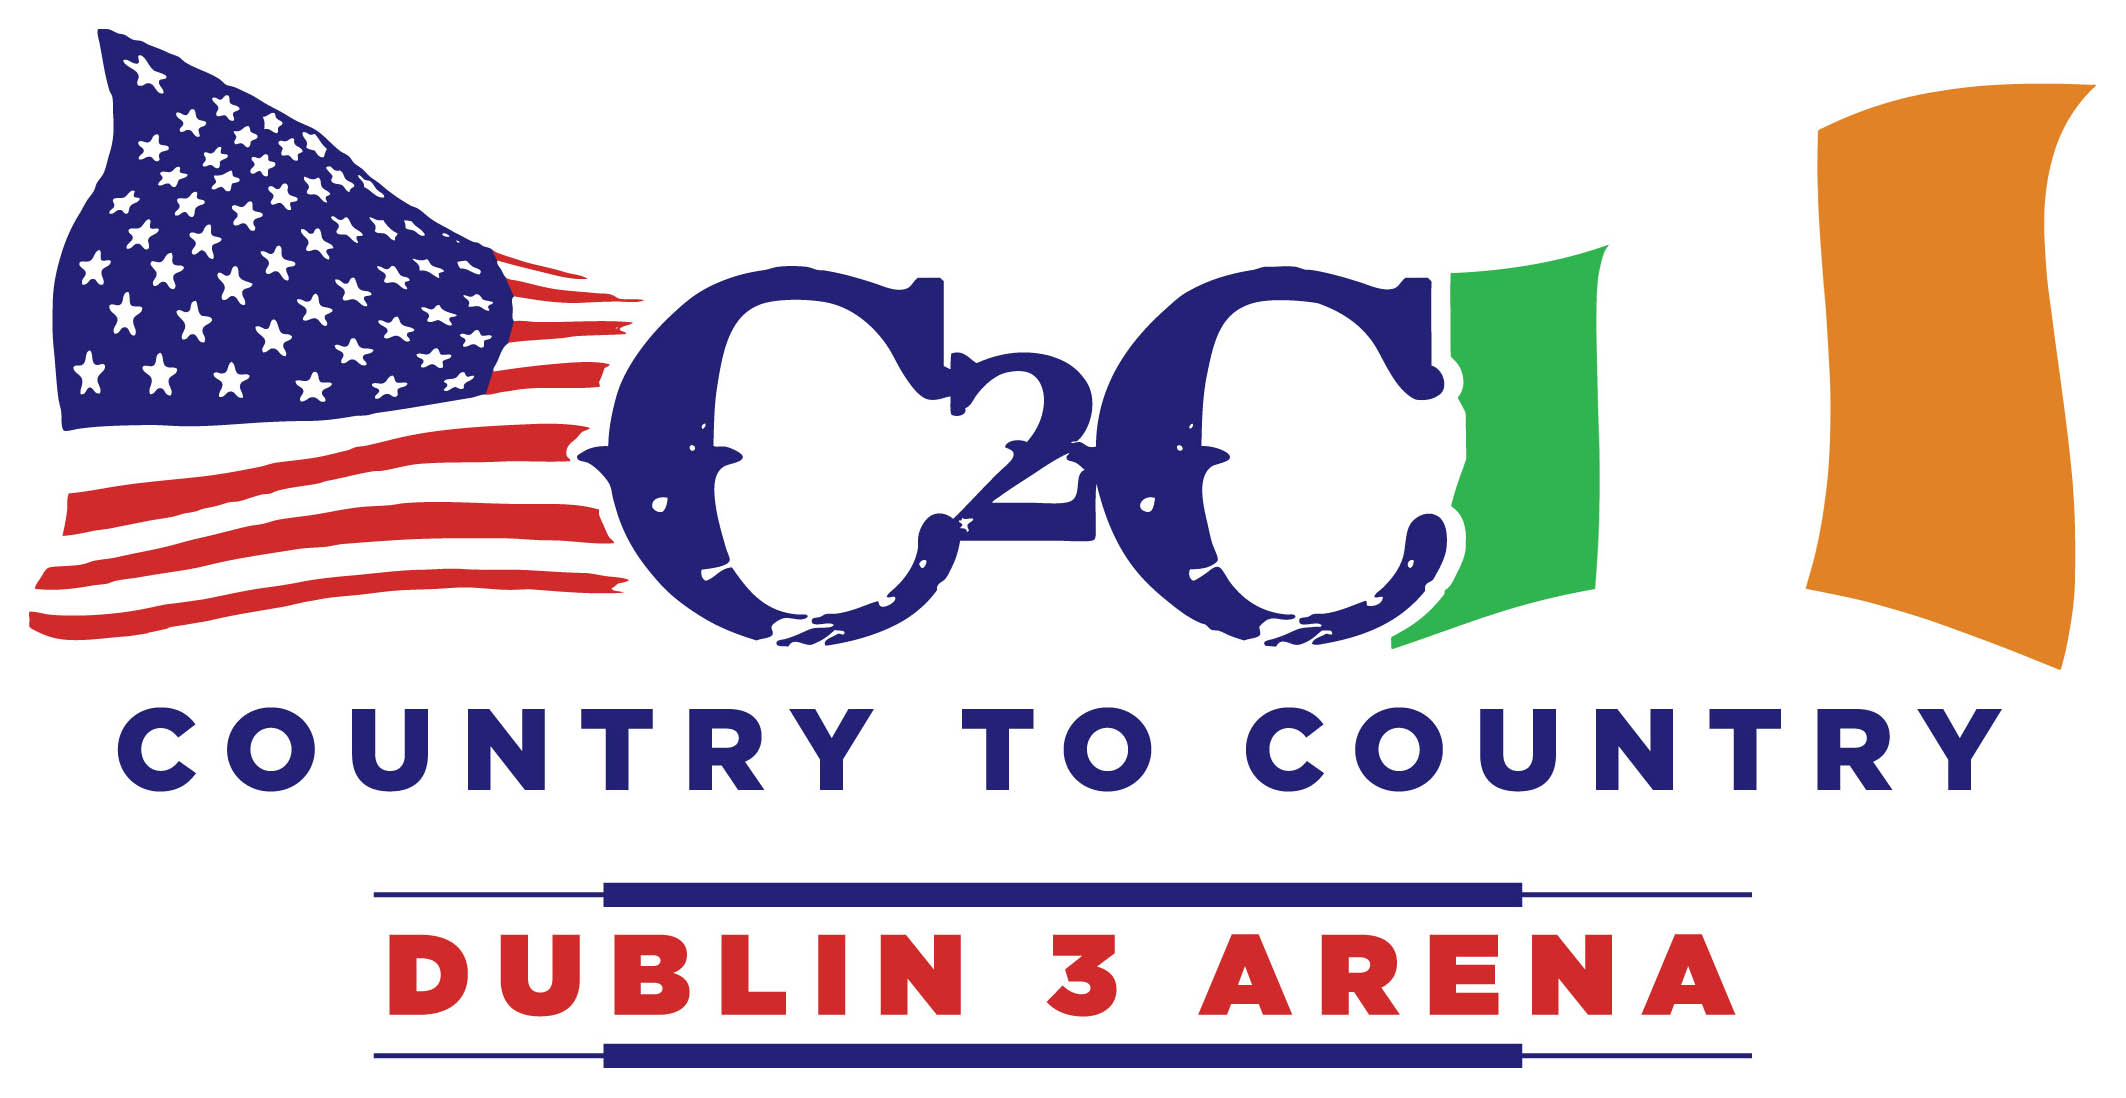 Country to Country Dublin